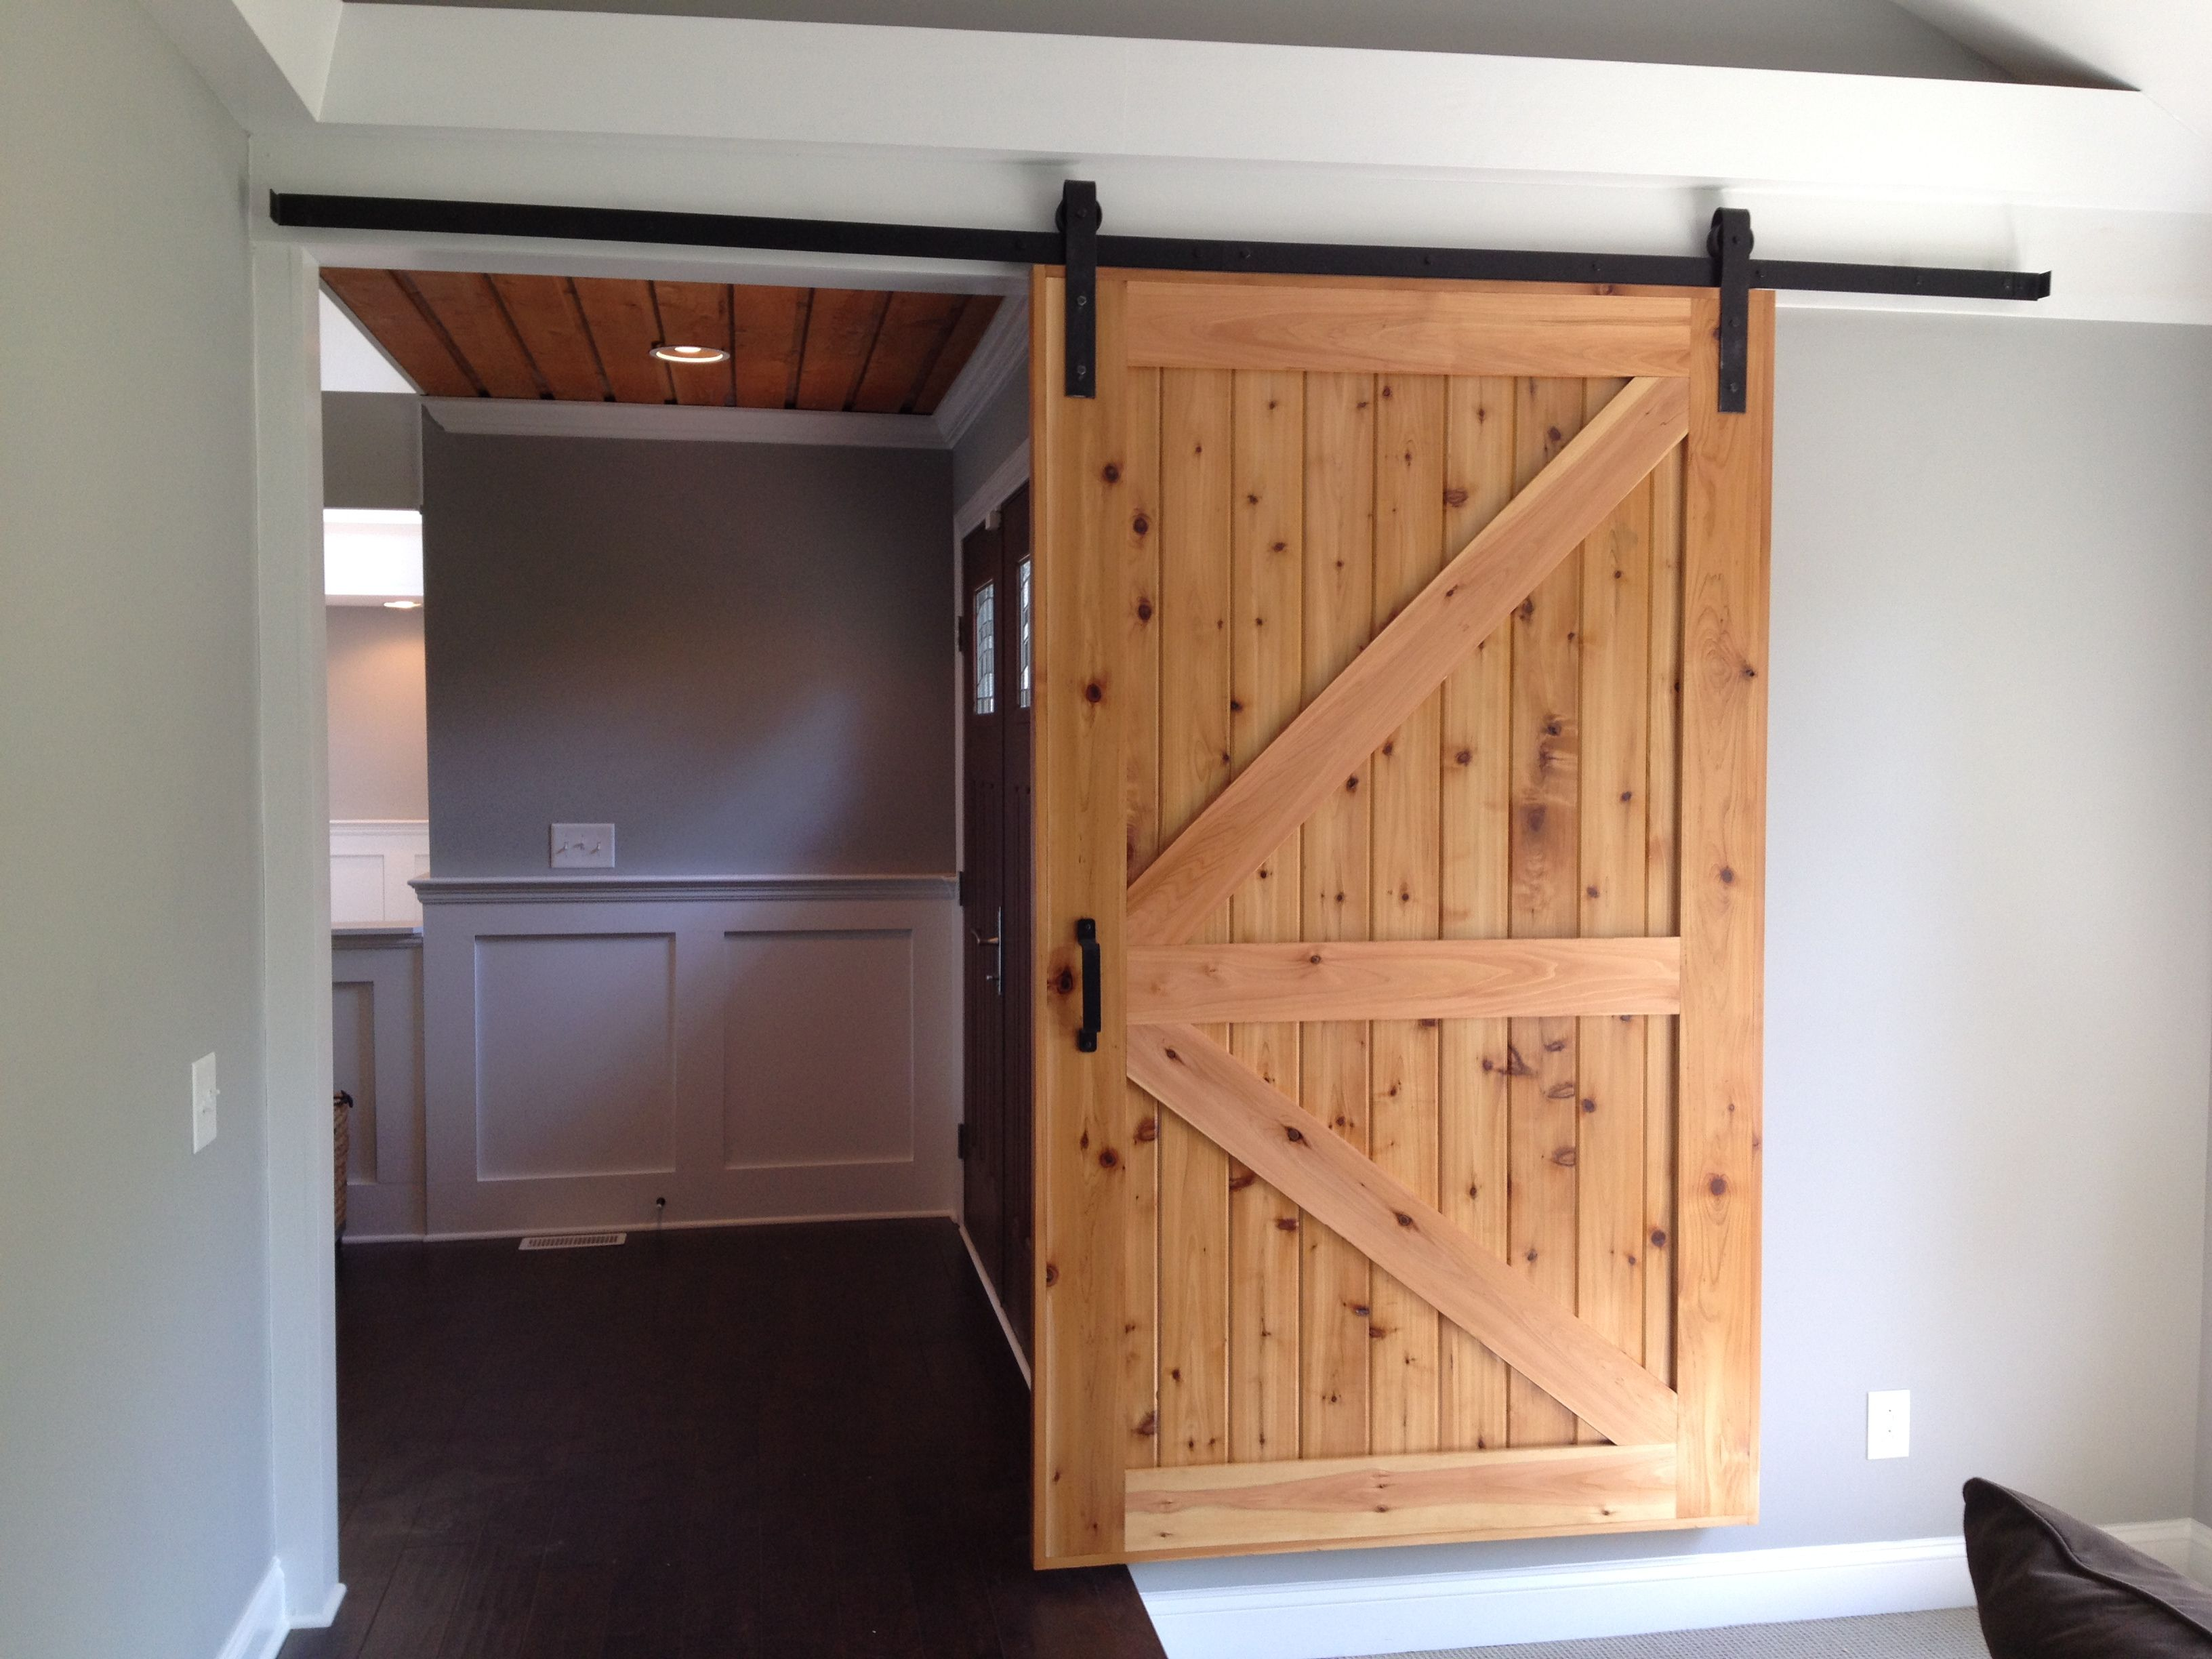 Rustic 80 sliding barn door hardware is ideal for barn conversions rustic 80 sliding barn door hardware is ideal for barn conversions period properties or simply cedar doorinterior planetlyrics Choice Image